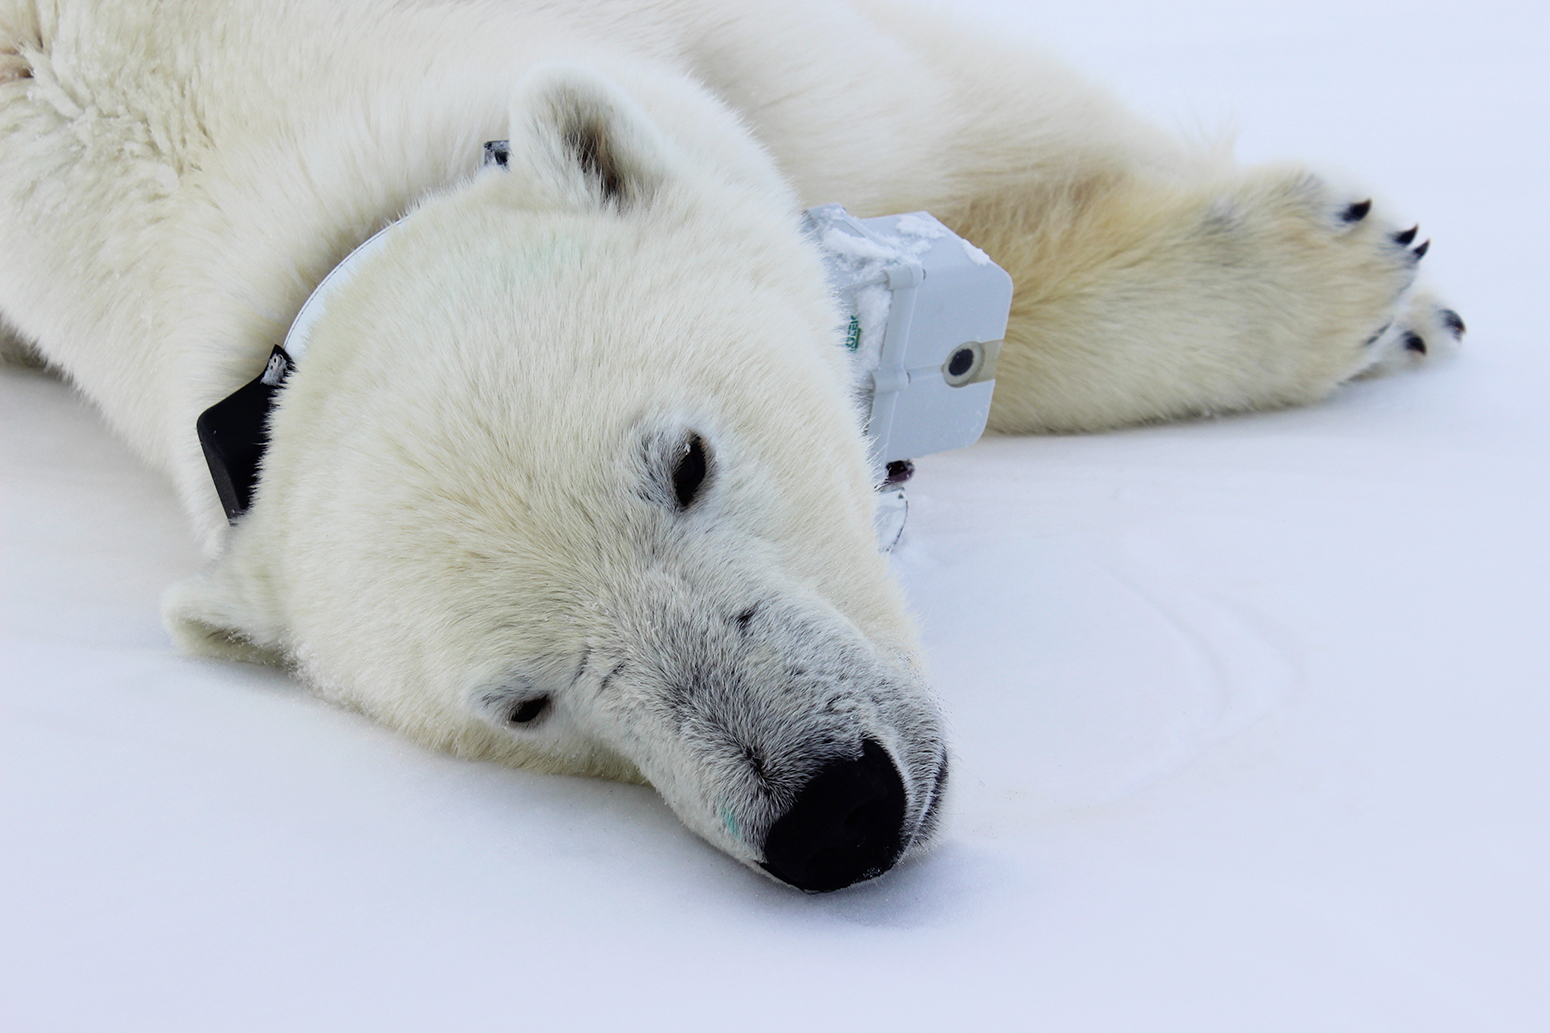 Polar bears could be struggling to catch enough prey